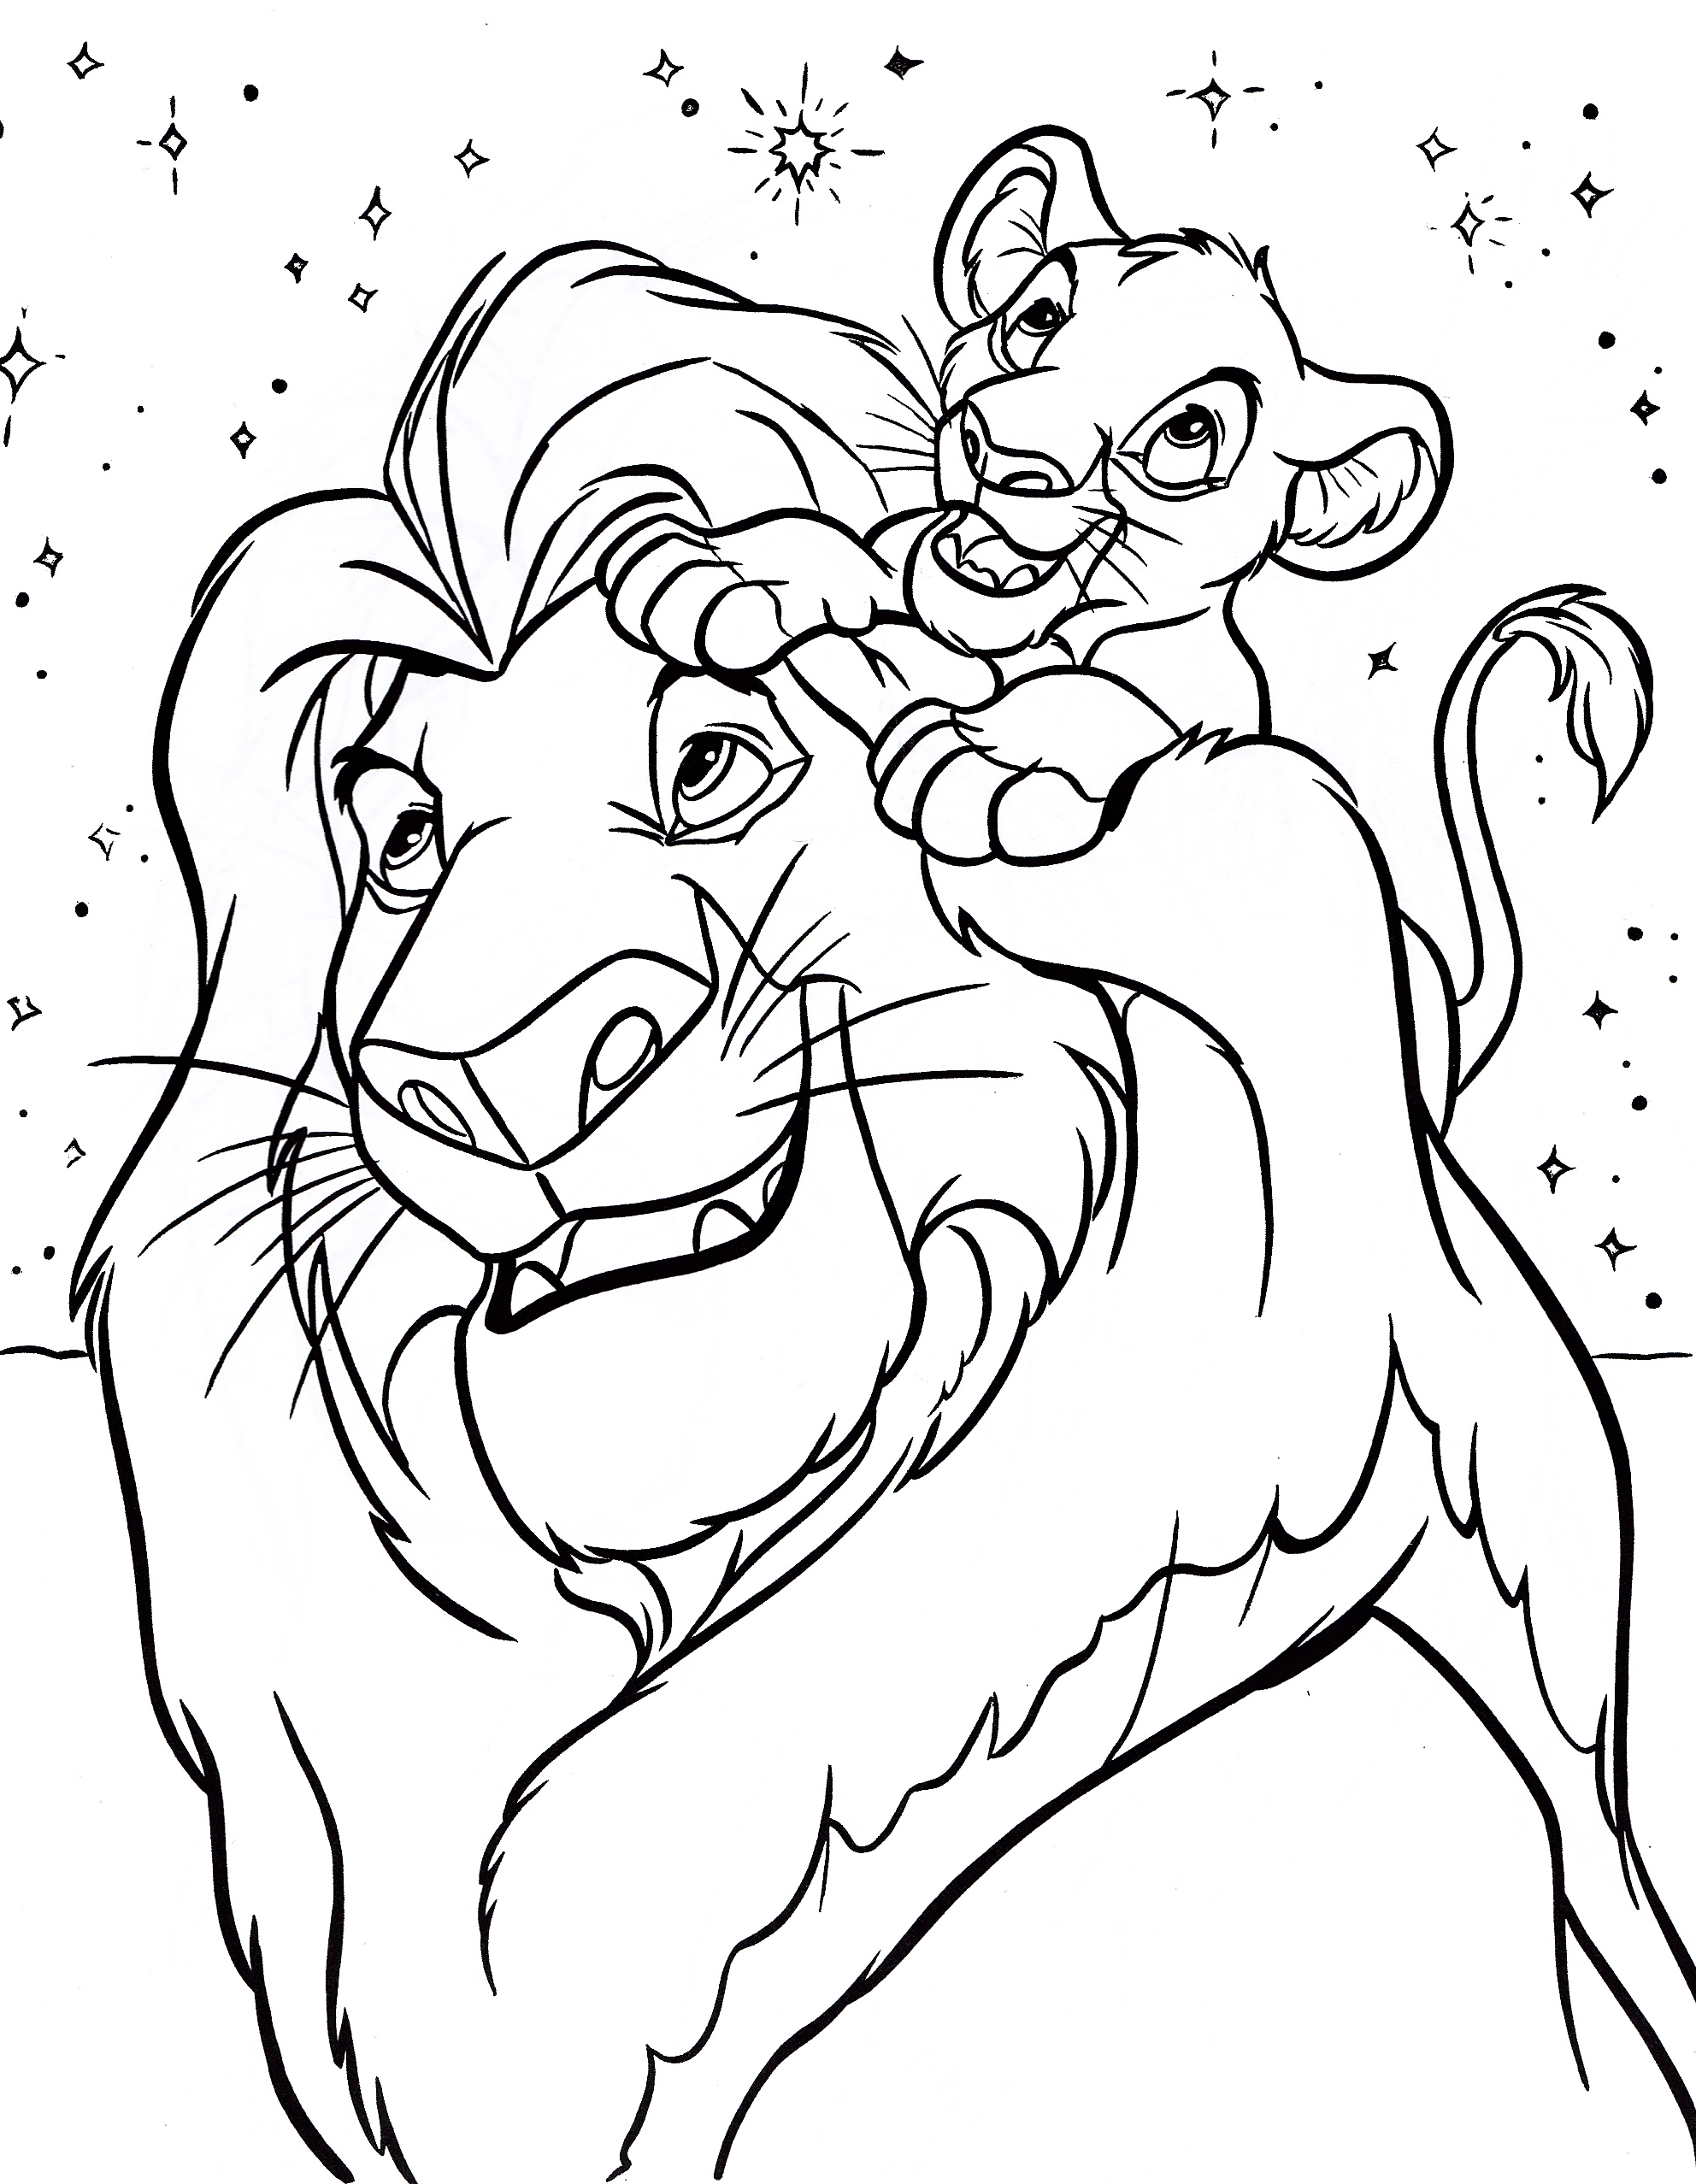 disneyland coloring pages printable - photo#28